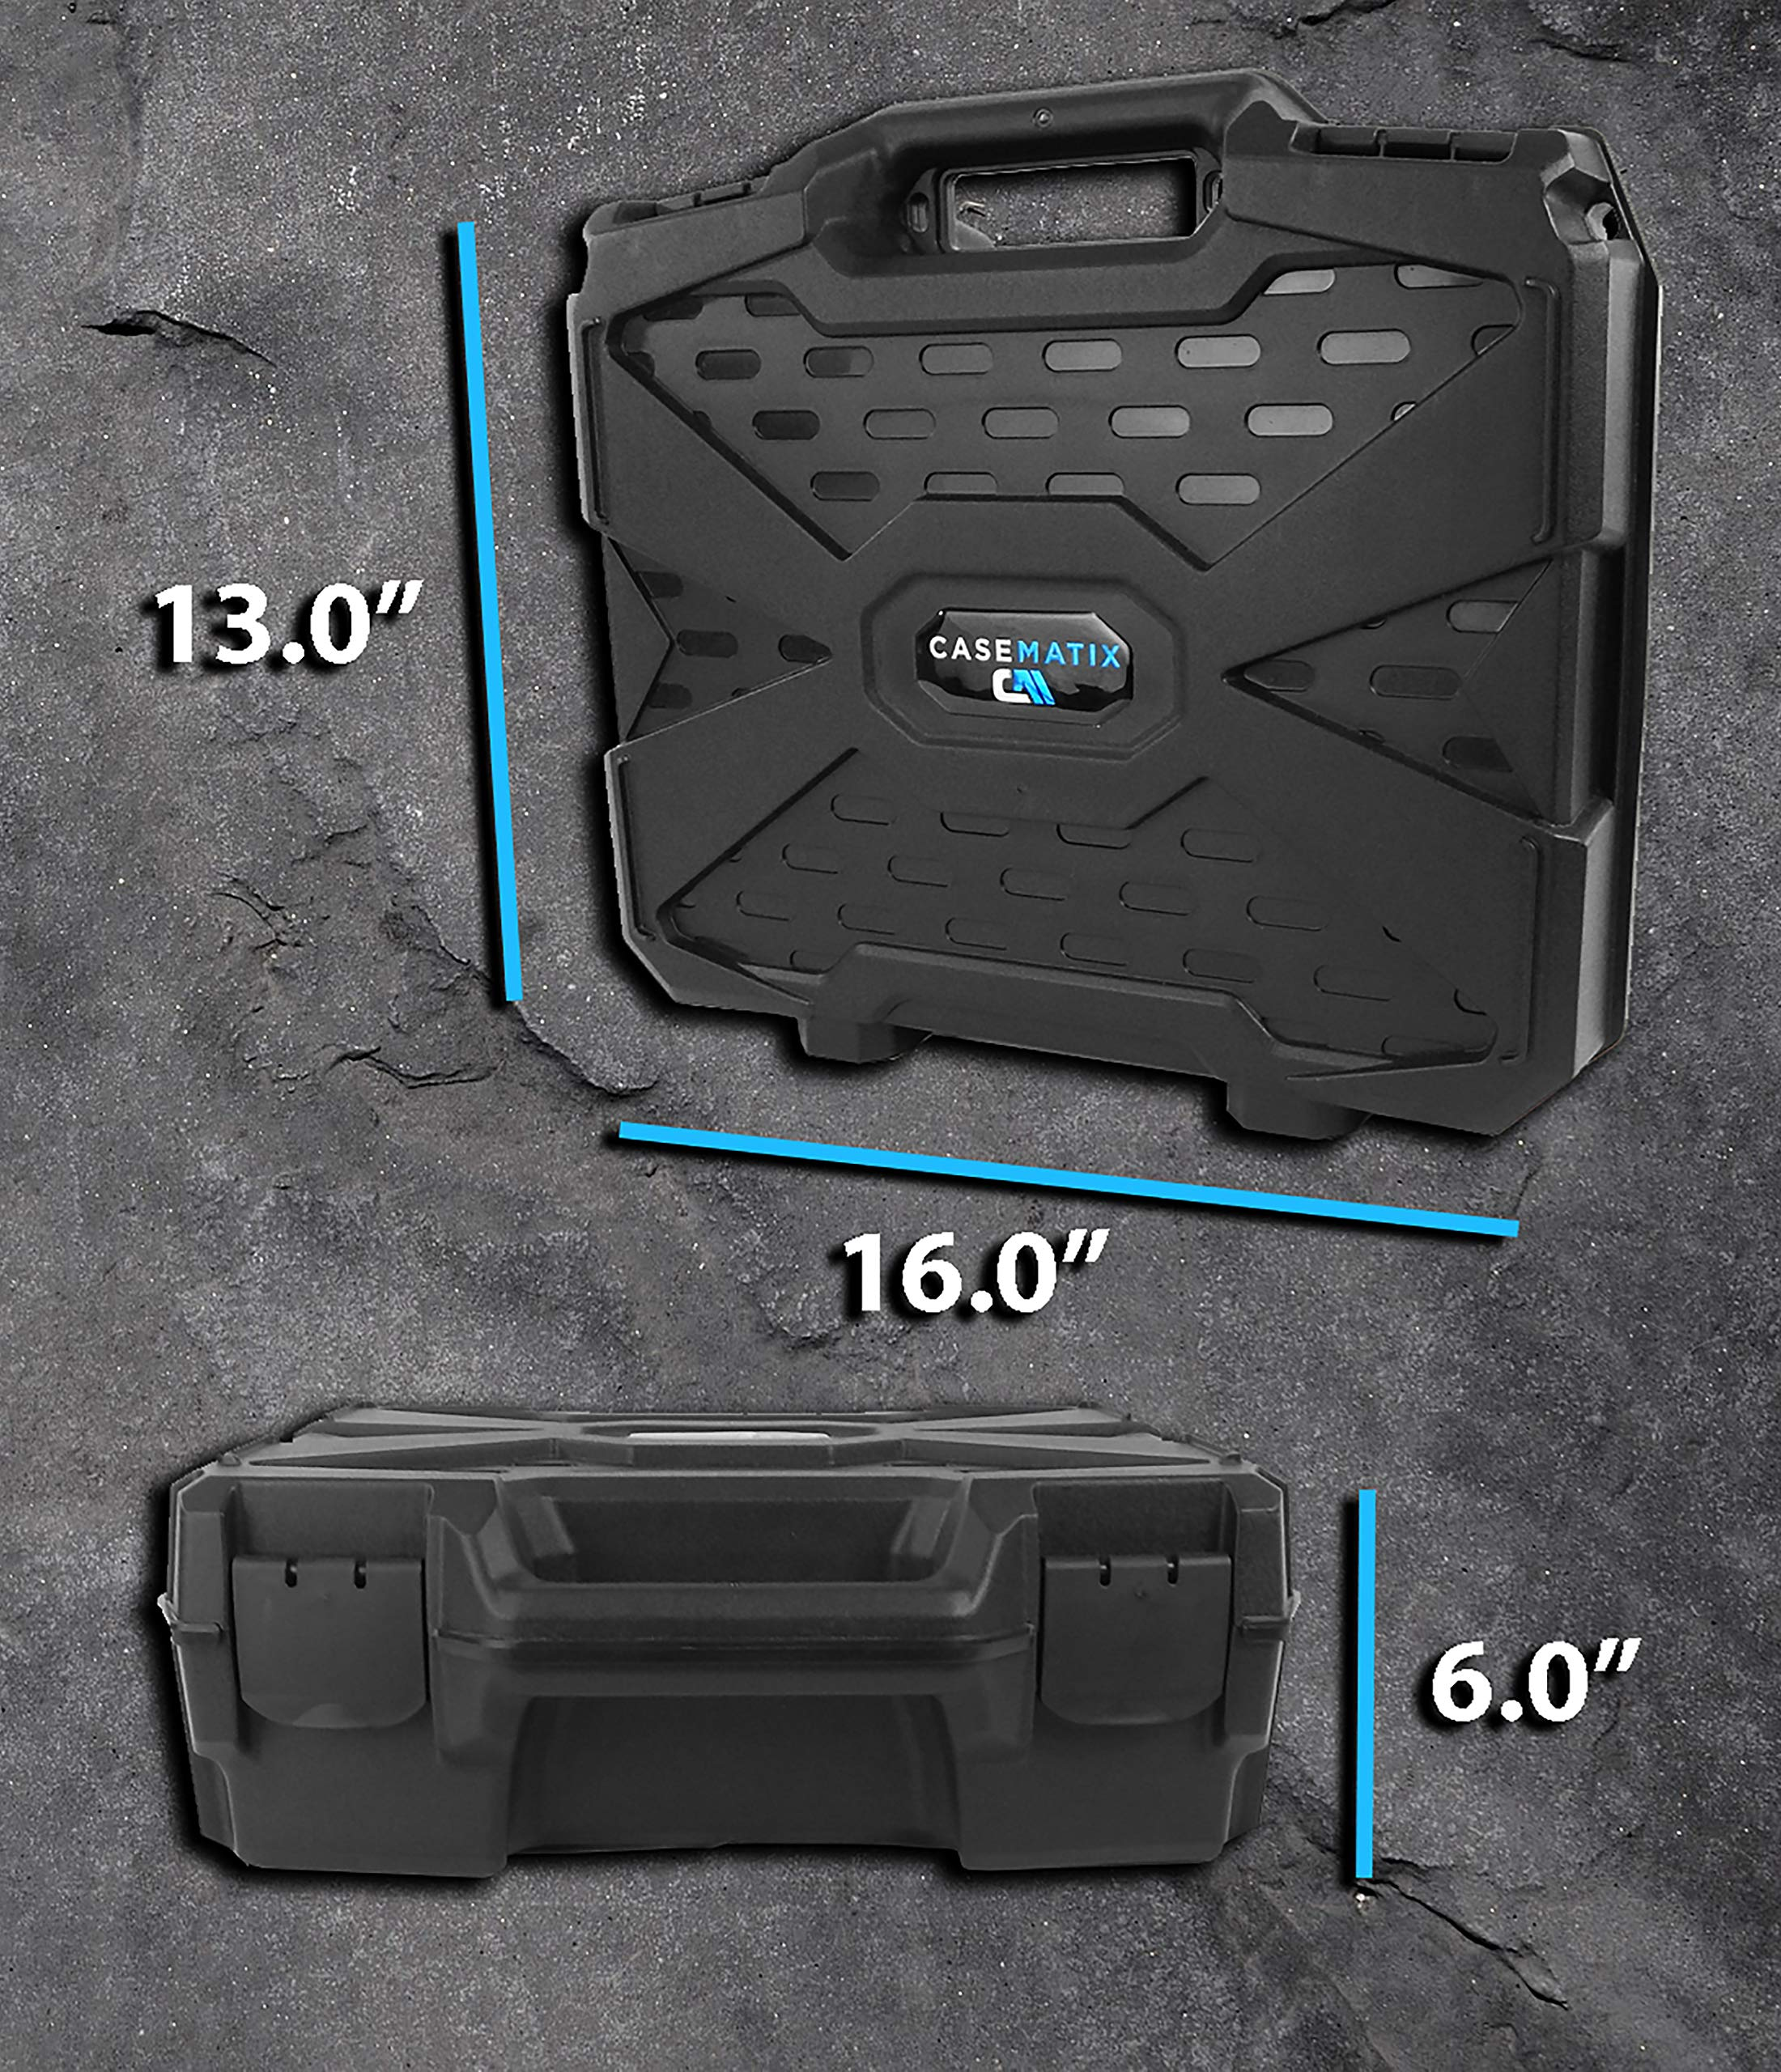 CASEMATIX Console Case Made For Xbox One X 1Tb, Project Scorpion ...